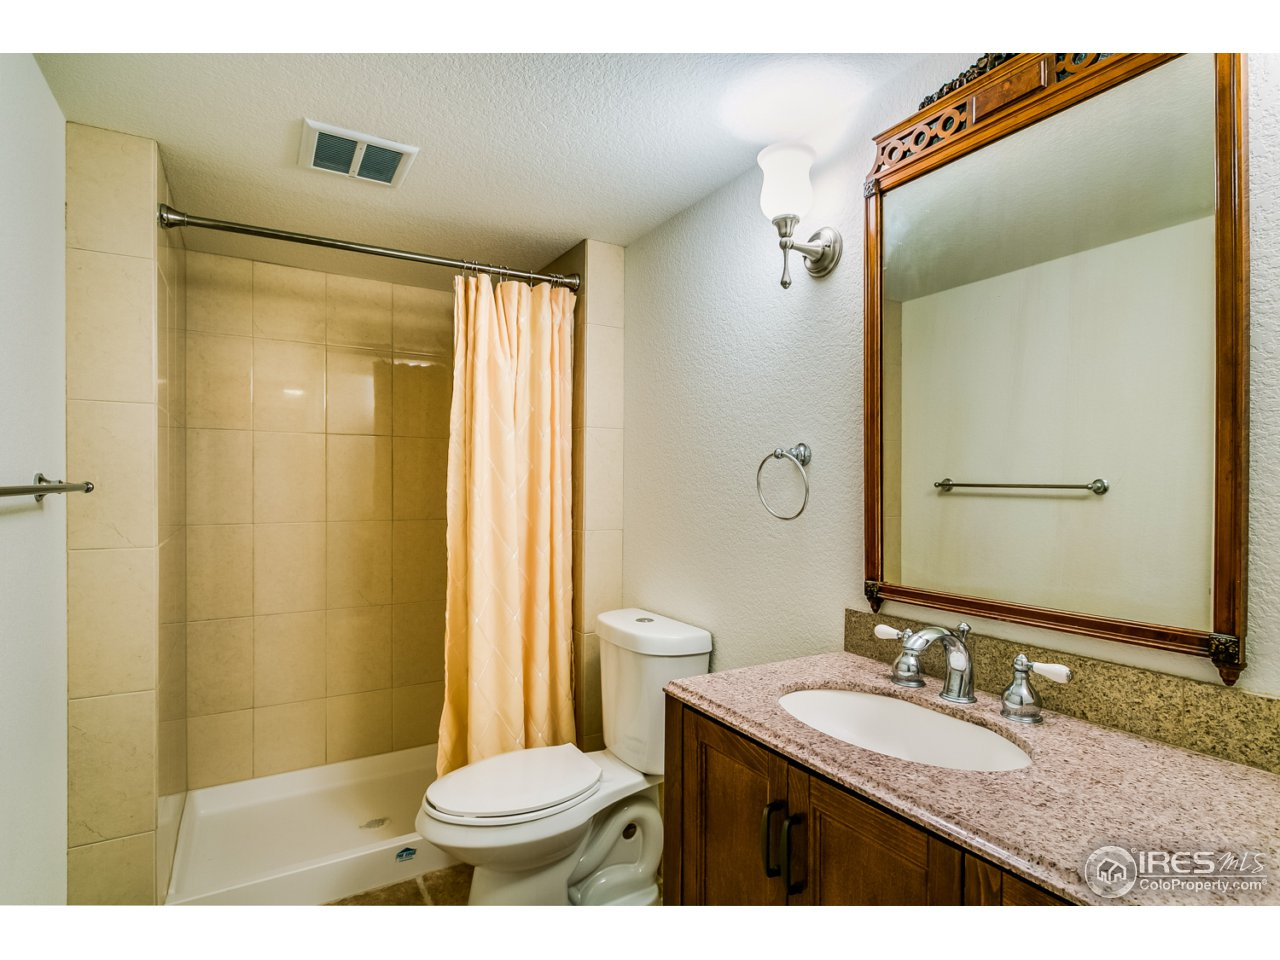 Lower bath with shower